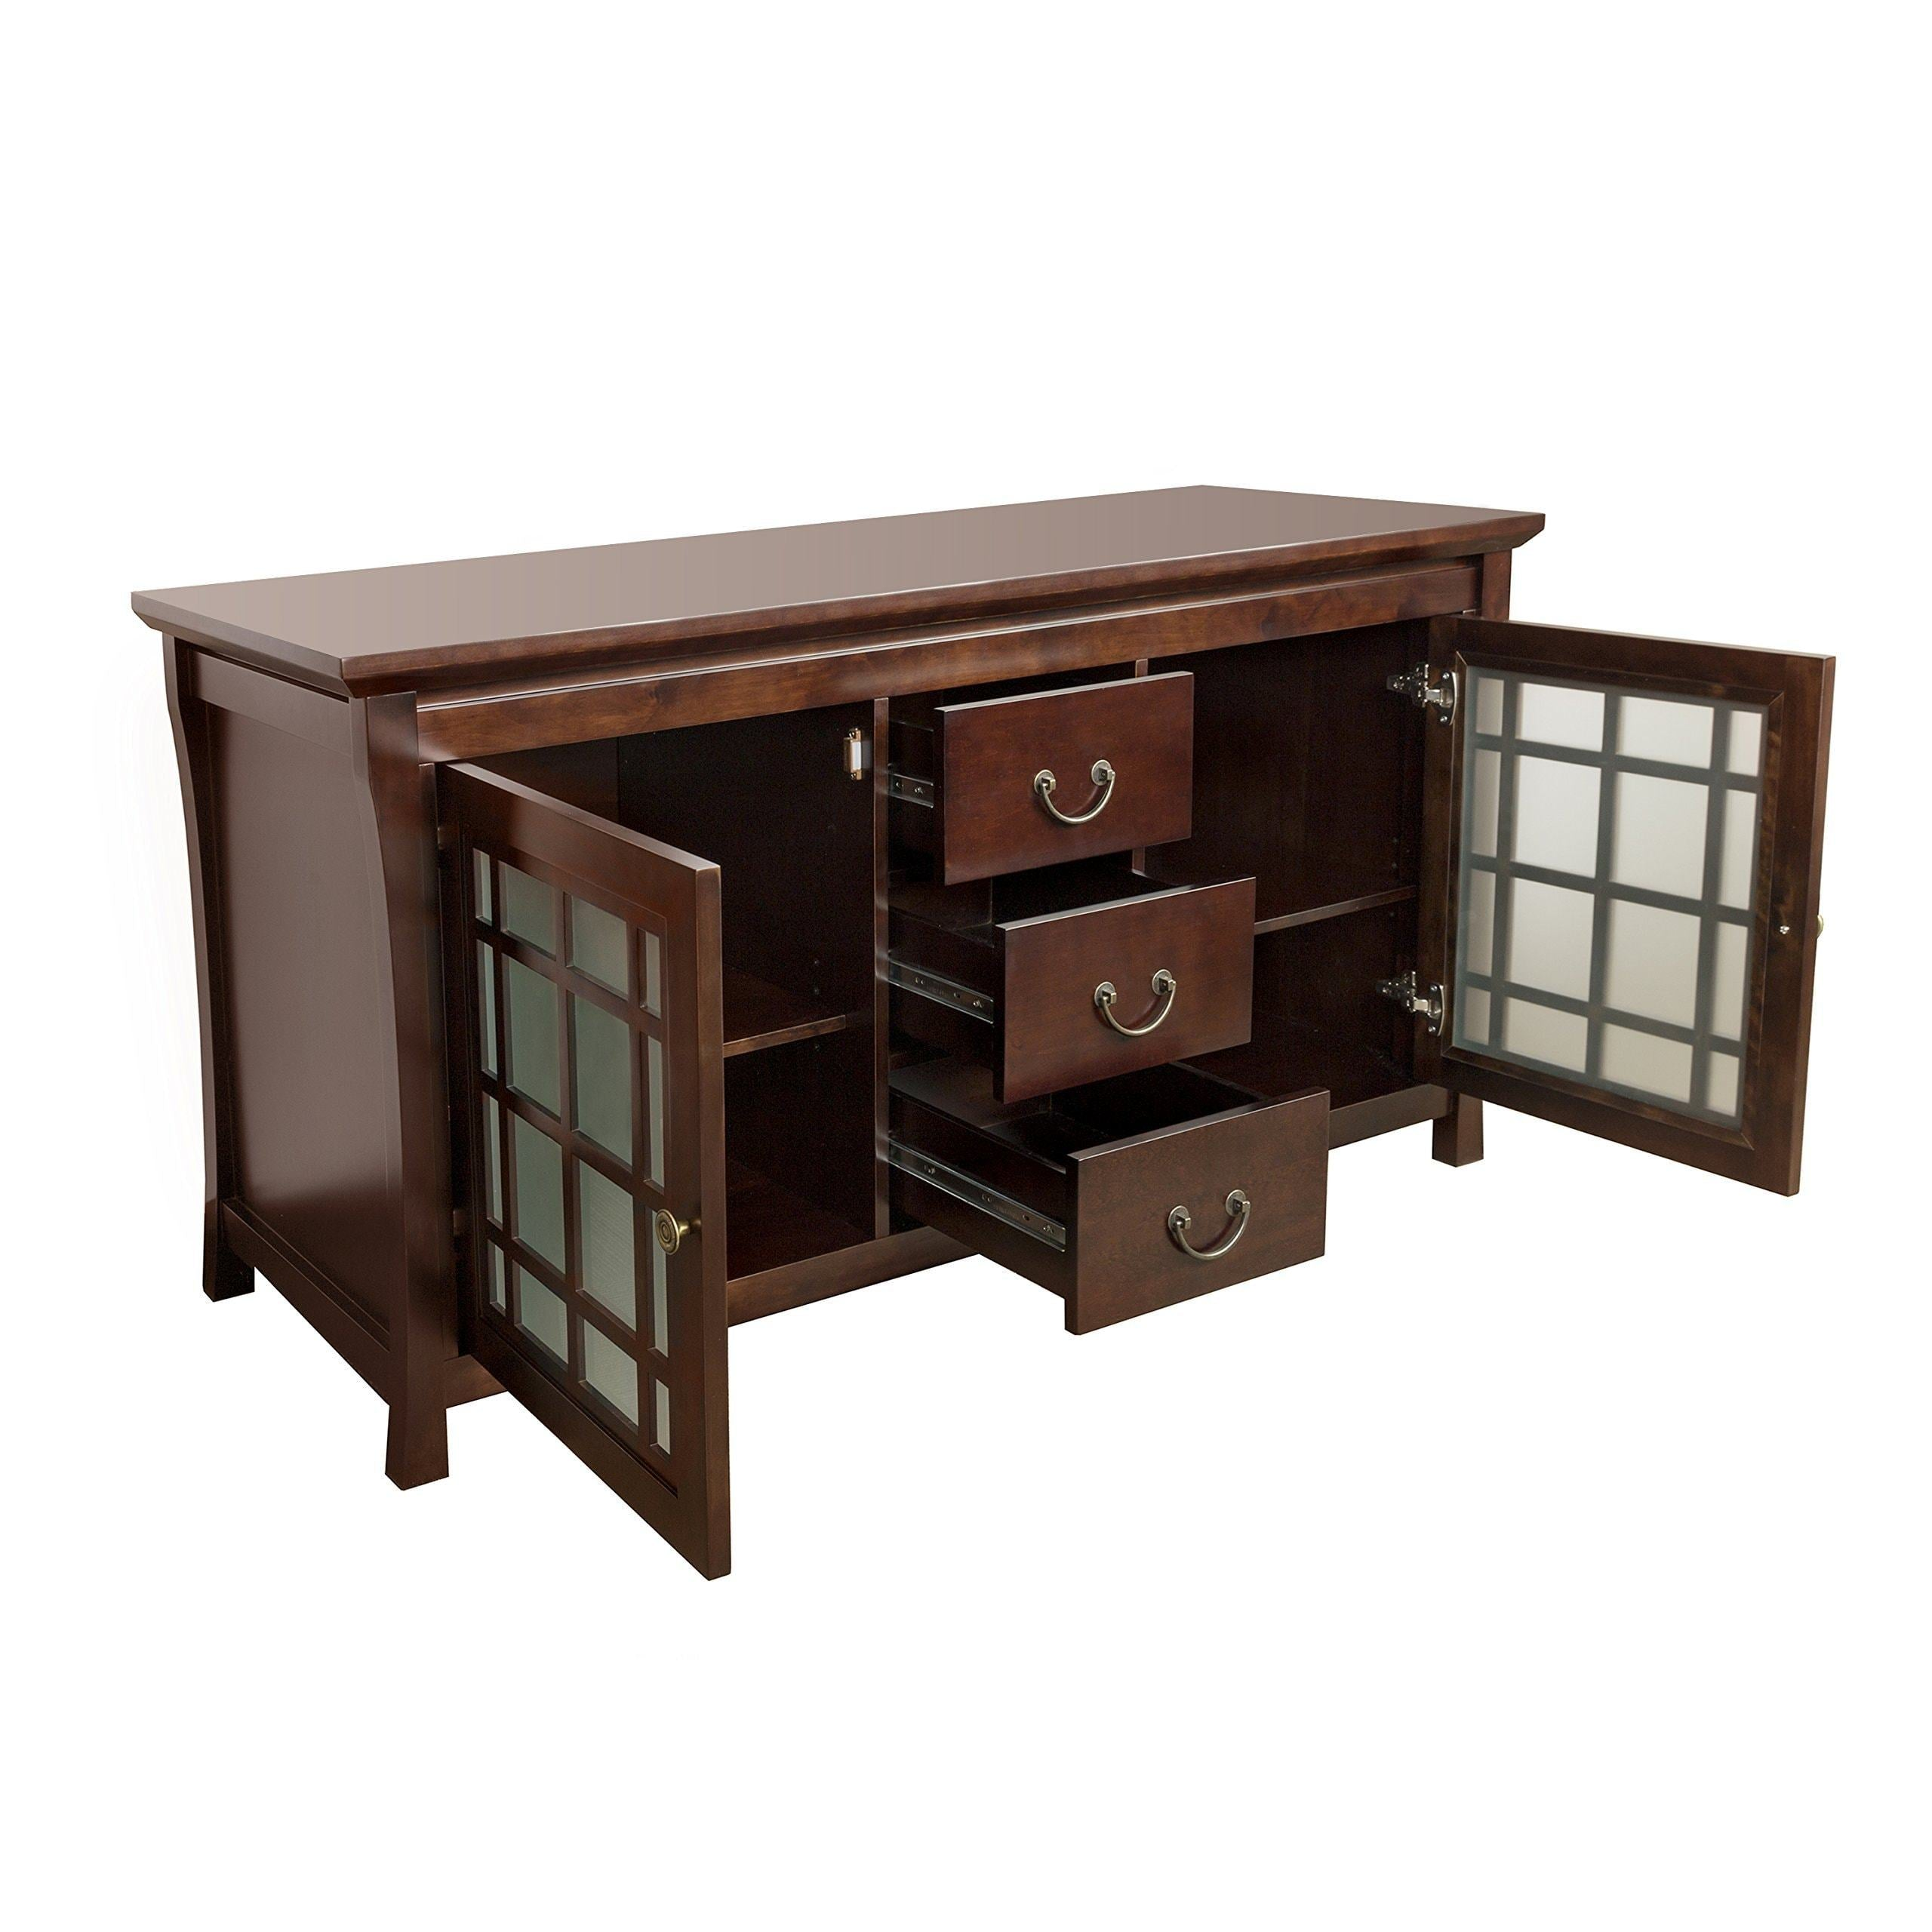 Top ronbow shoji 60 inch living room bathroom furniture in vintage walnut wood cabinet with three drawers wood countertop 040460 d f07_kit_1